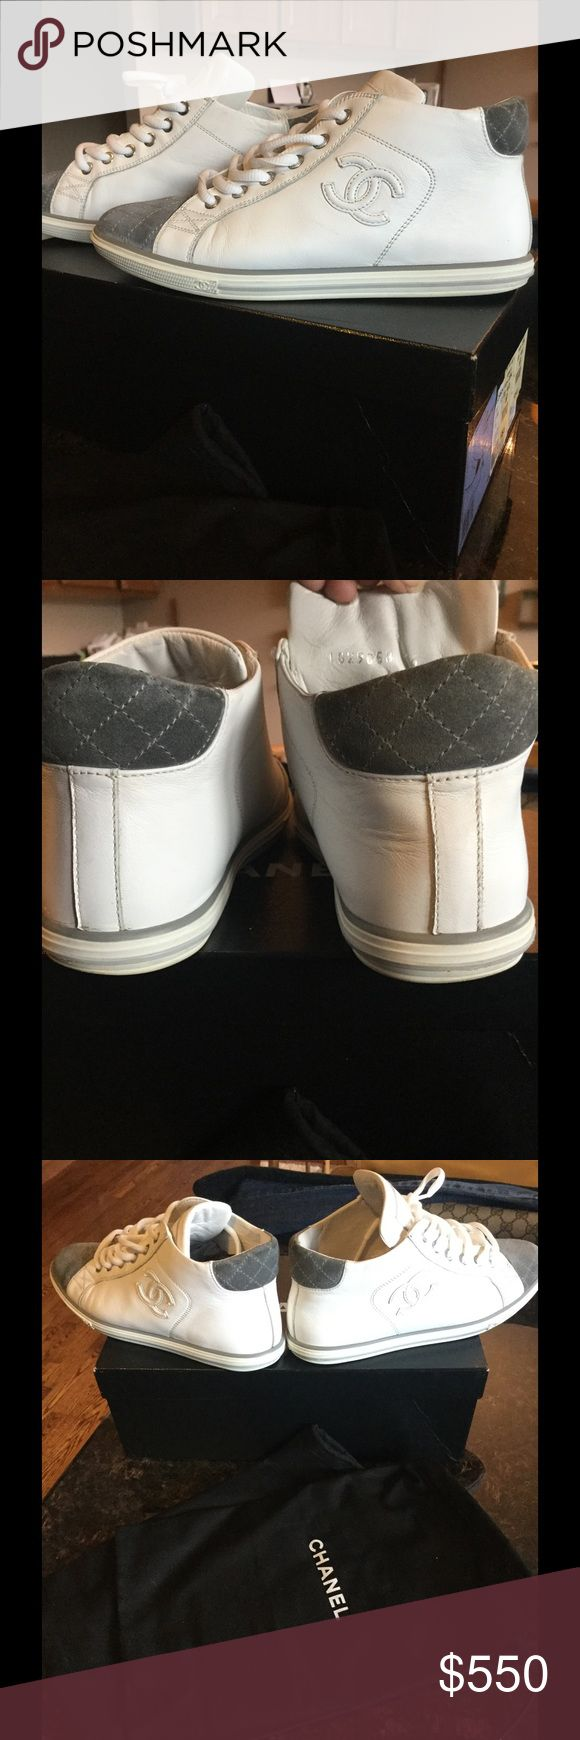 AUTHENTIC Chanel leather tennis shoes 100% authentic leather Chanel tennis shoes were worn one time they are absolutely gorgeous and they speak for themselves if you have any questions please feel free to ask thank you for looking and happy poshing CHANEL Shoes Athletic Shoes